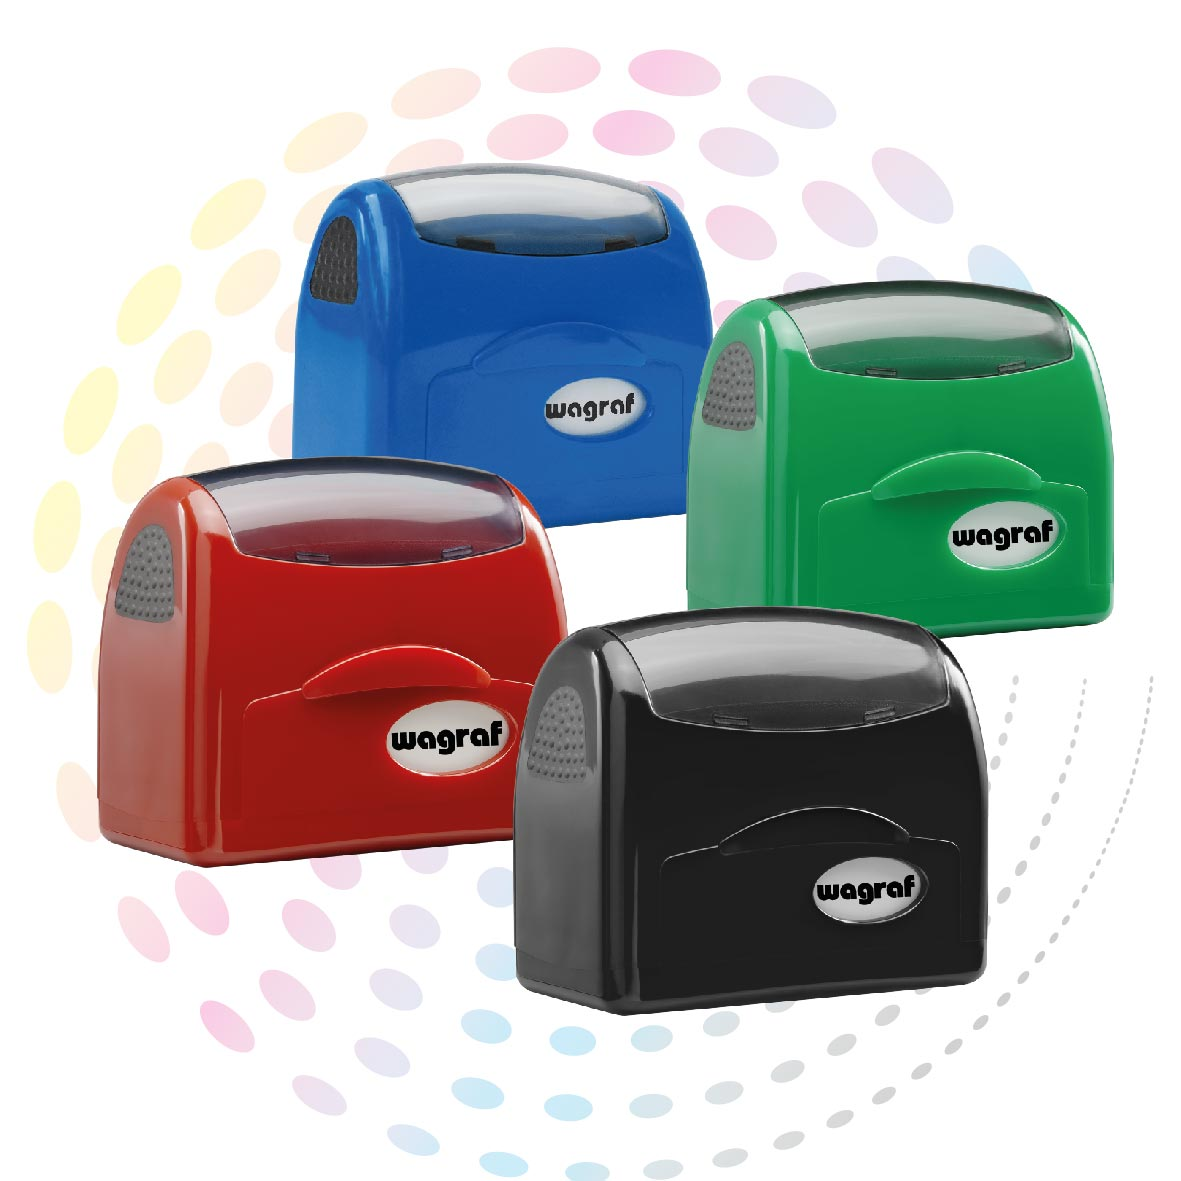 Wagraf Self-Inking Stamps 1